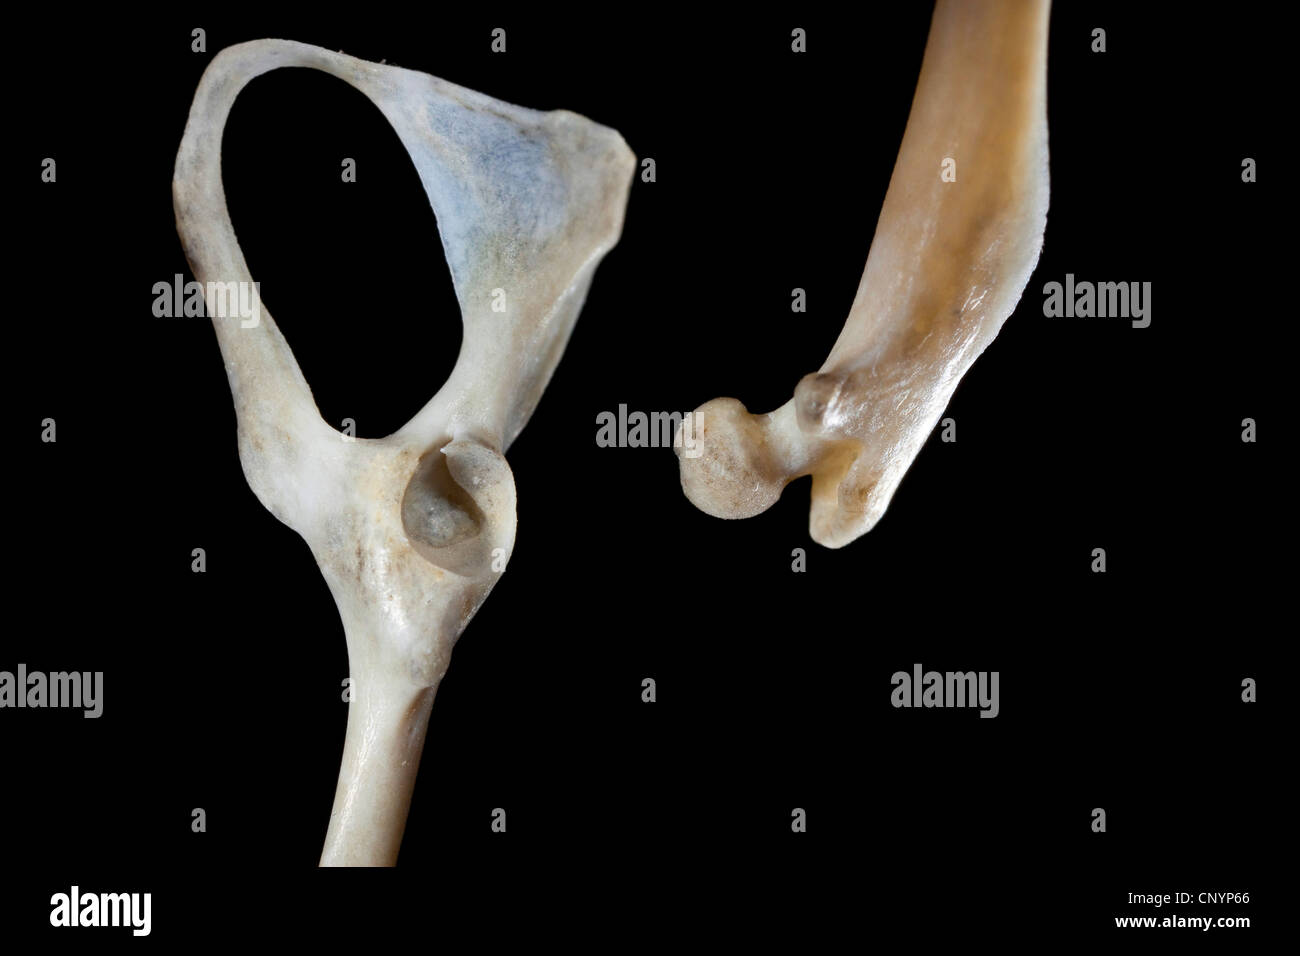 Barn owl (Tyto alba), pelvic and thigh bone of a mouse, undigested food residue from a pellet - Stock Image